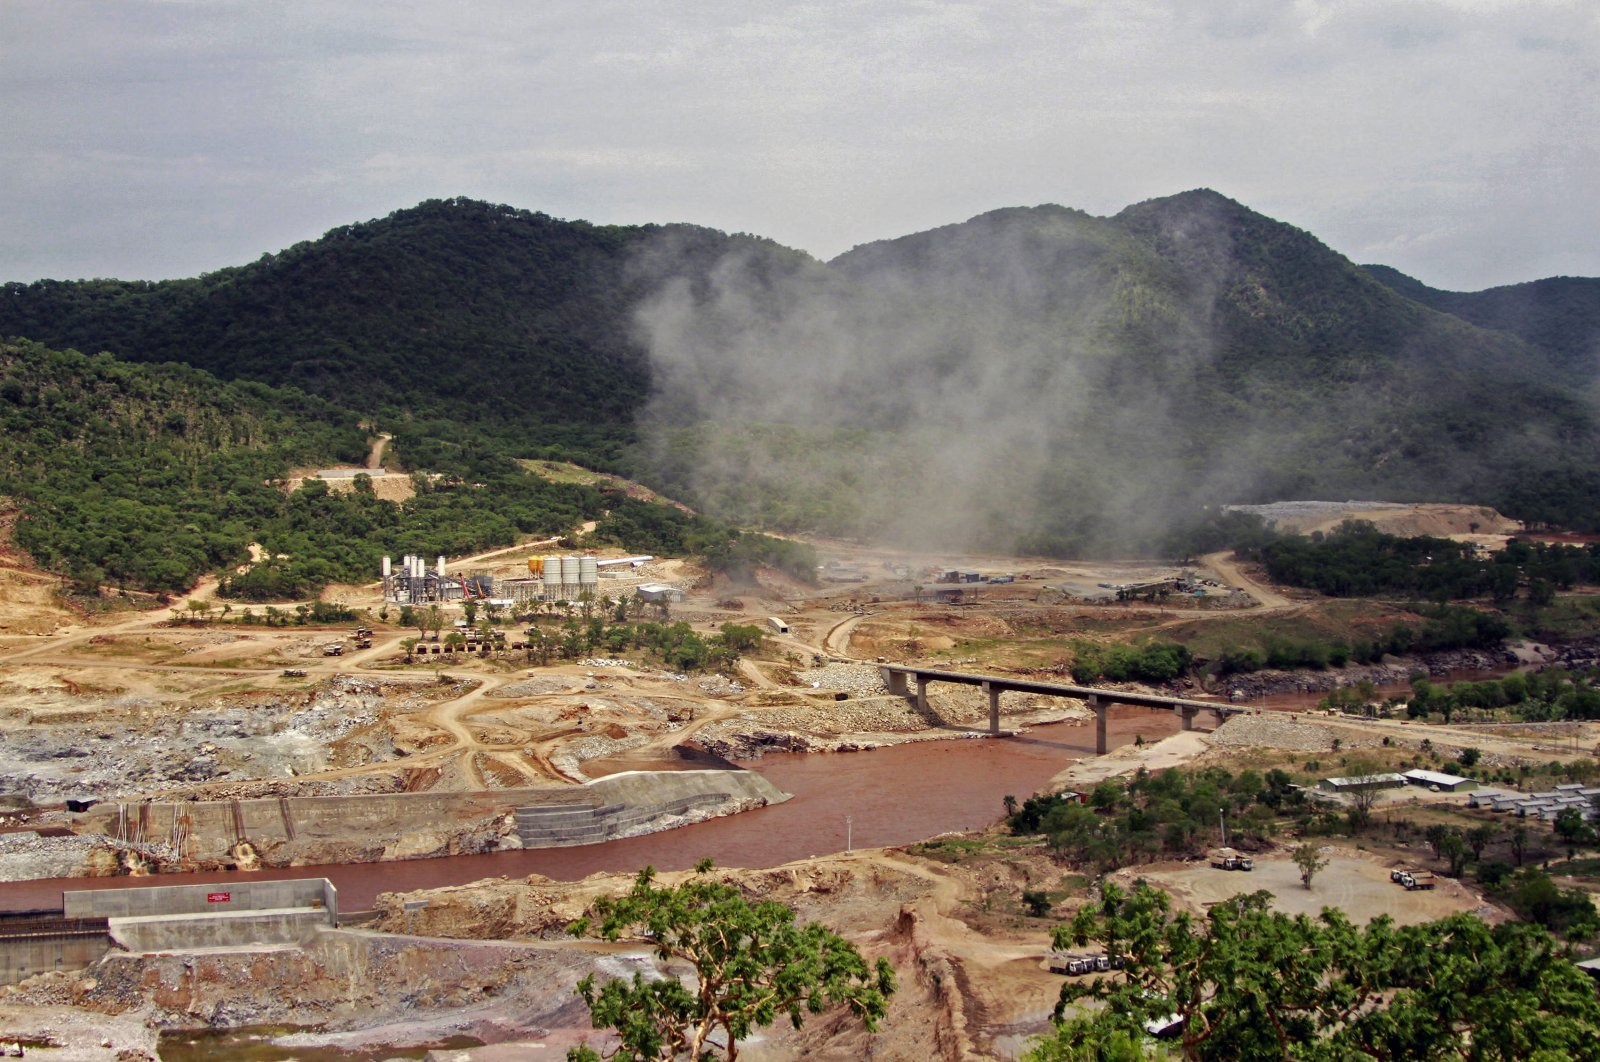 In this June 28, 2013 file photo, the Blue Nile flows near the site of the planned Grand Ethiopian Renaissance Dam near Assosa in the Benishangul-Gumuz region of Ethiopia, near Sudan, some 800 kilometers (500 miles) from the capital Addis Ababa. (AP Photo)